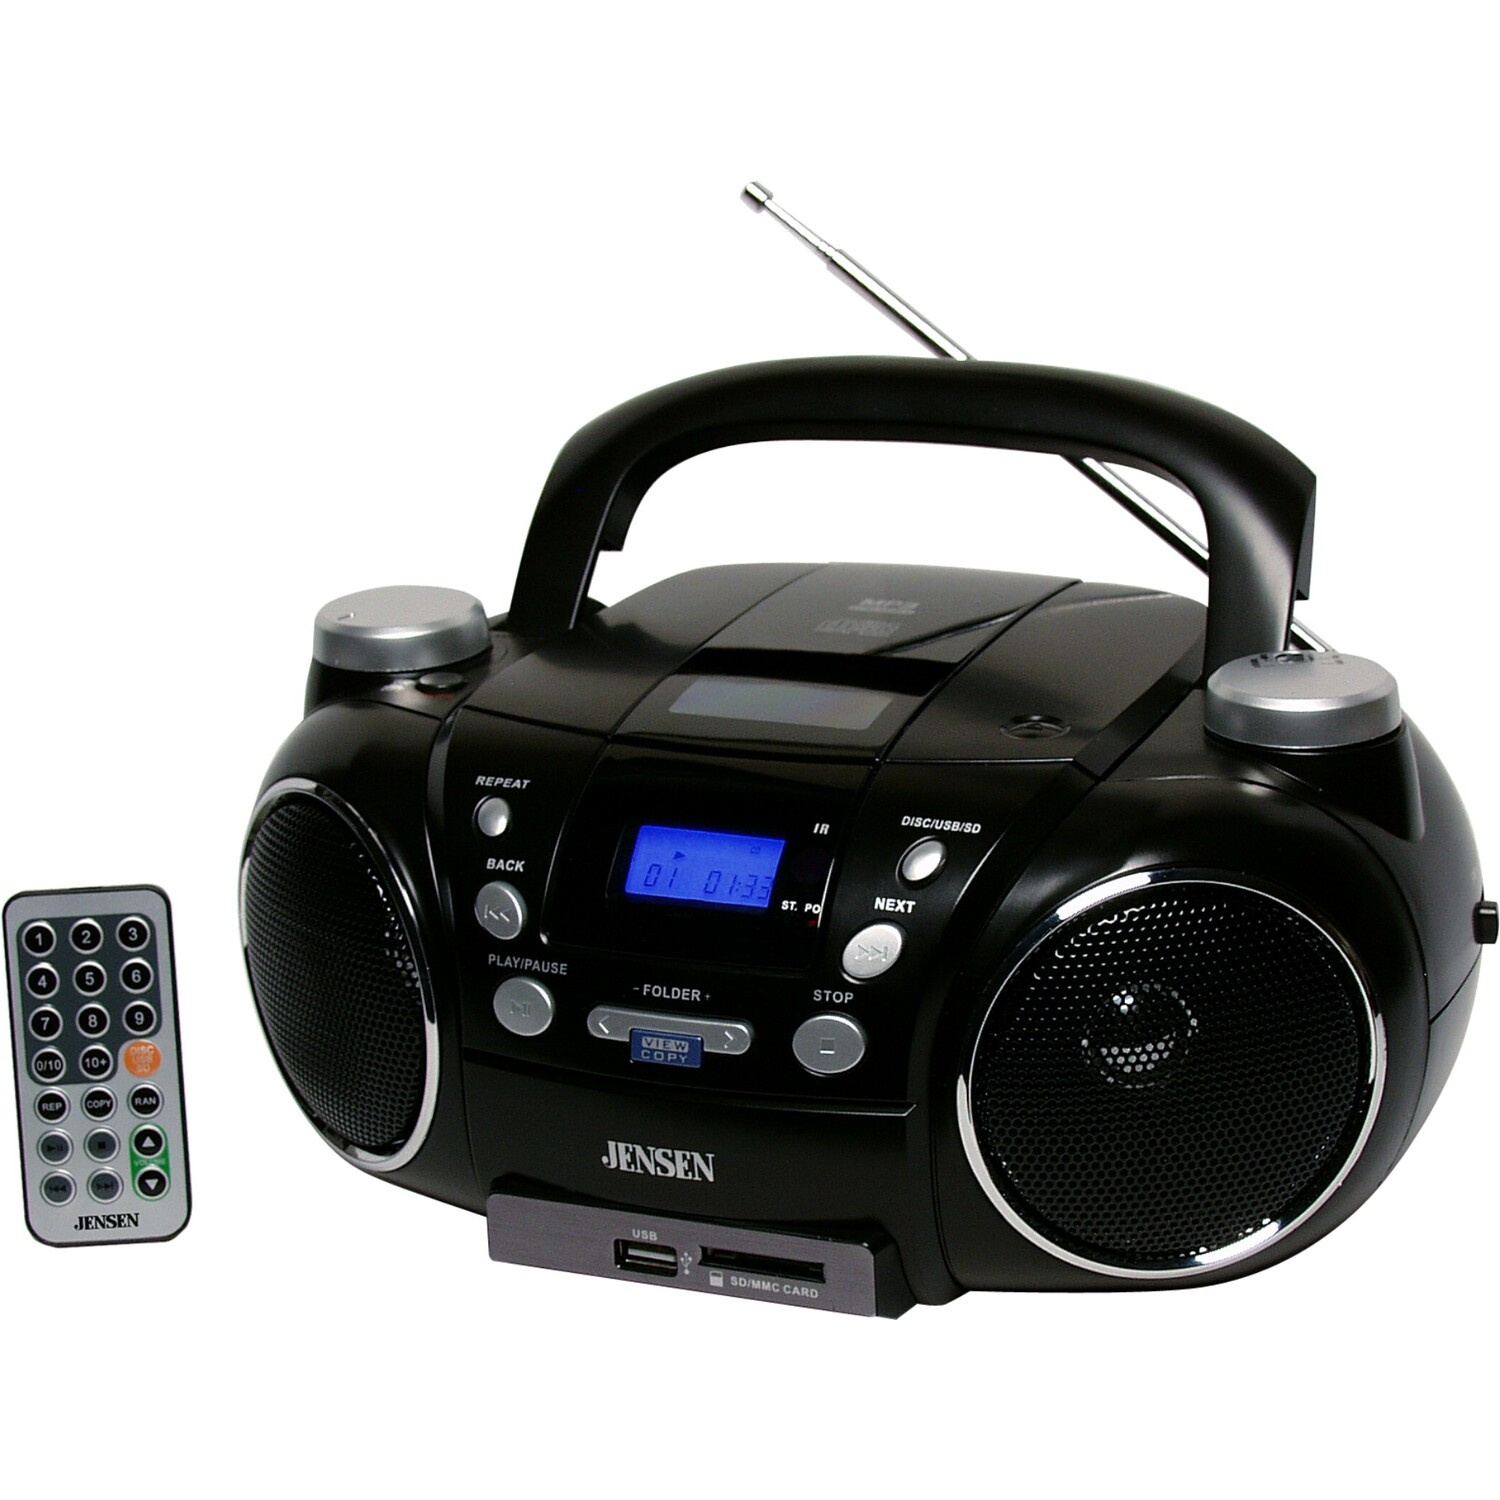 jensen jensen cd750 blk portable cd player am fm radio with digital by oj commerce ptjs750. Black Bedroom Furniture Sets. Home Design Ideas